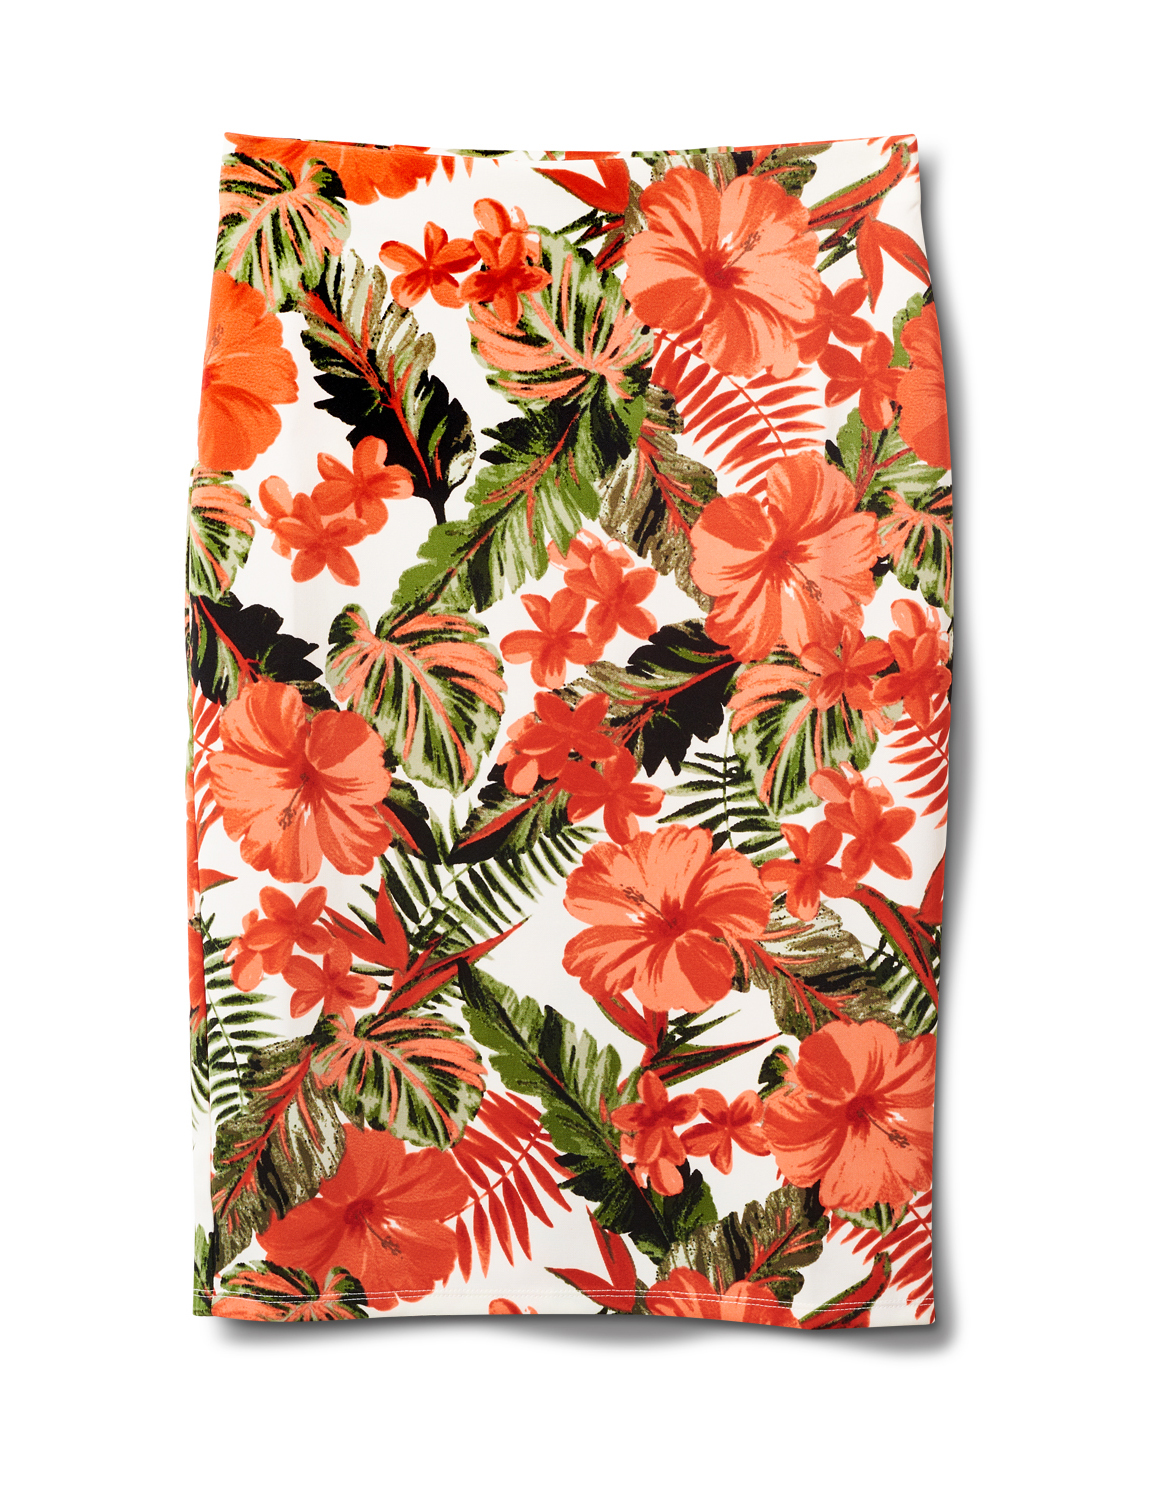 Printed Pull On  Floral Scuba Crepe Skirt -Sugar Swizzle/Spice isle - Front